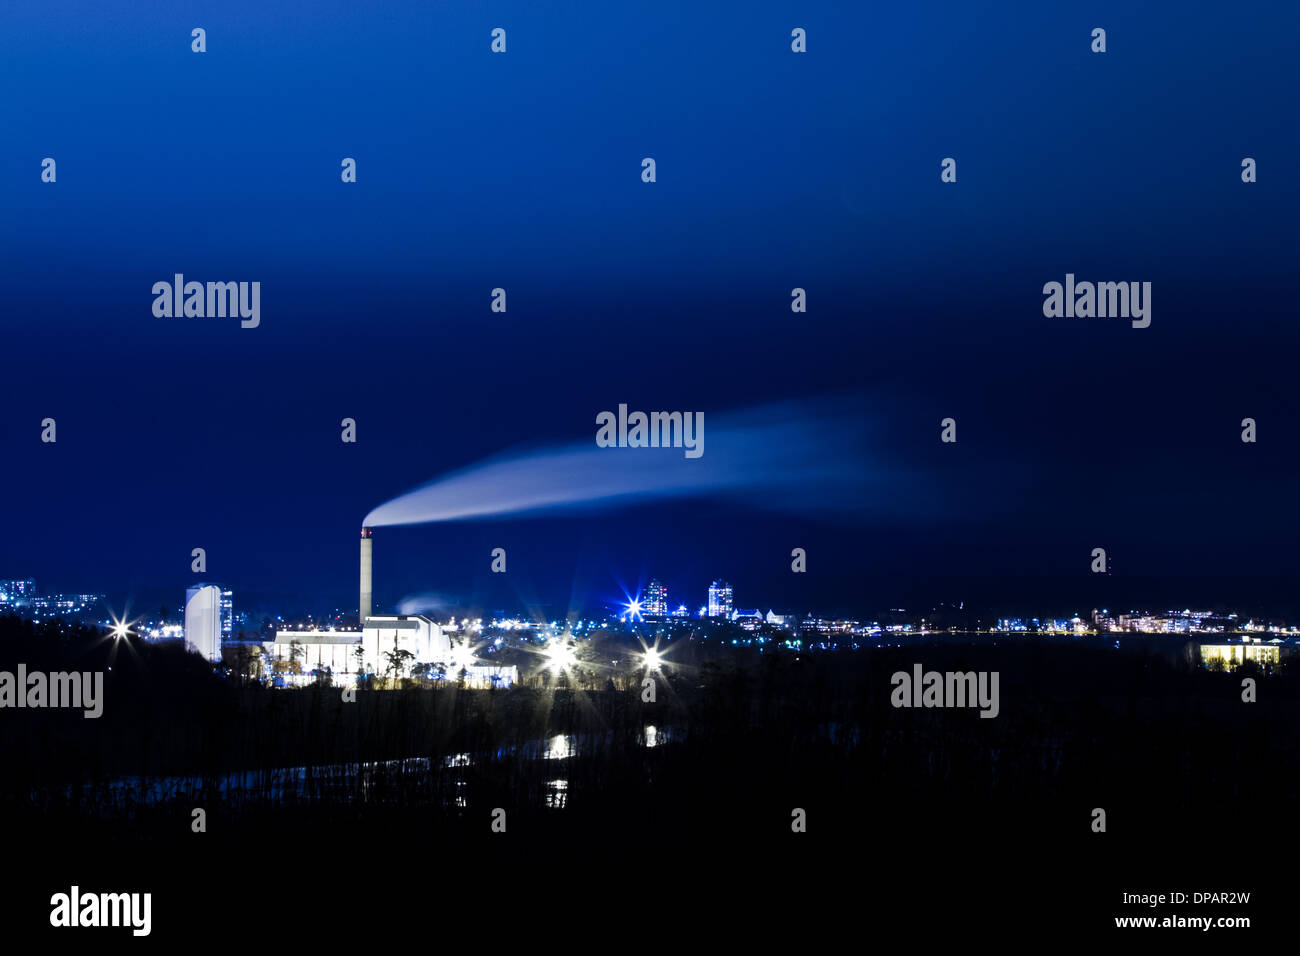 Smoke from a powerplant by night, 30 s exposure. - Stock Image